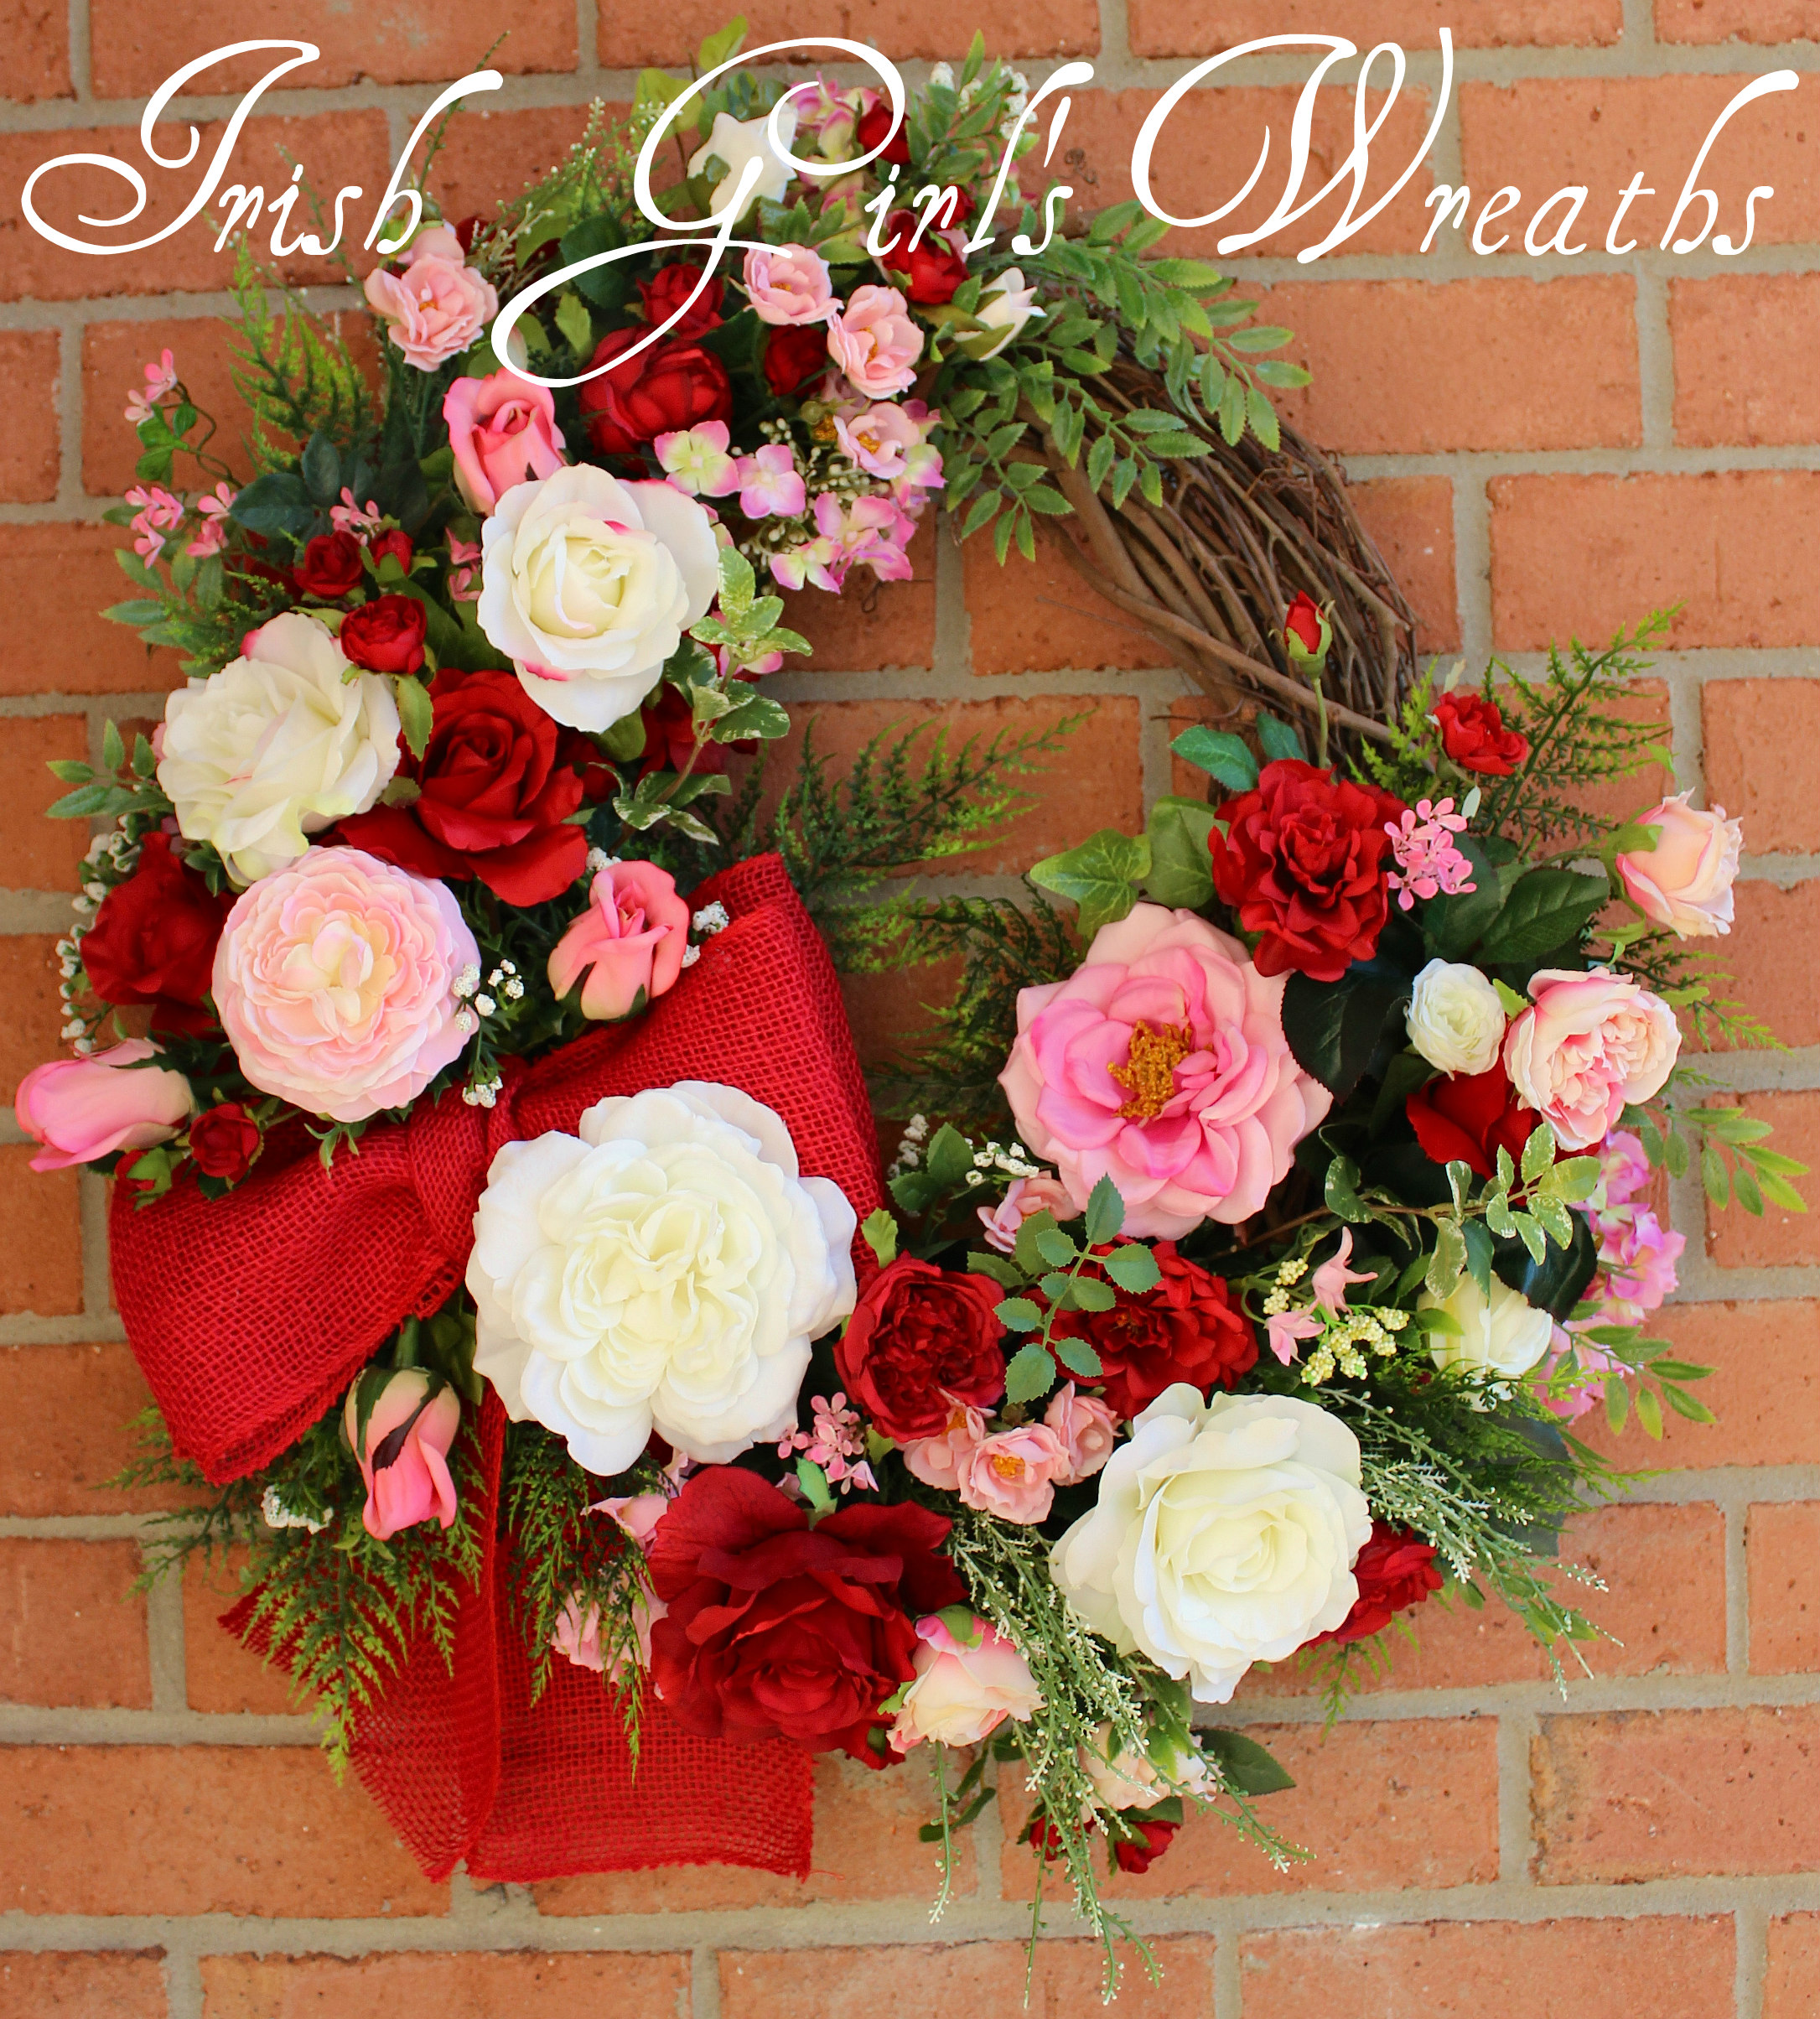 Pink and Red Valentine Rose Garden Wreath, Deluxe Spring Cottage Wreath, Large floral Wreath